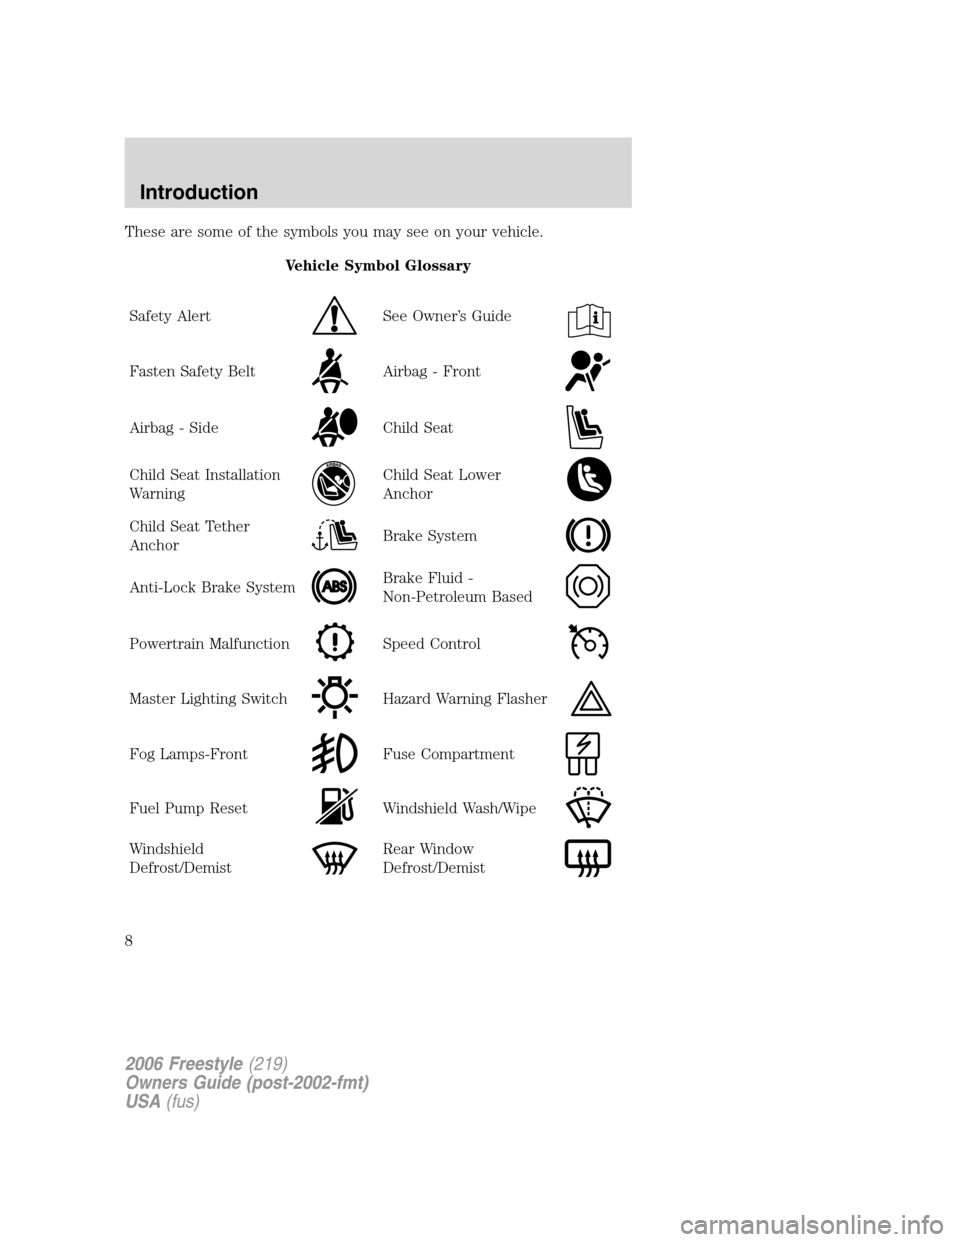 FORD FREESTYLE 2006 1.G Owners Manual These are some of the symbols you may see on your vehicle. Vehicle Symbol Glossary Safety Alert See Owner's Guide Fasten Safety BeltAirbag - Front Airbag - SideChild Seat Child Seat Installation War